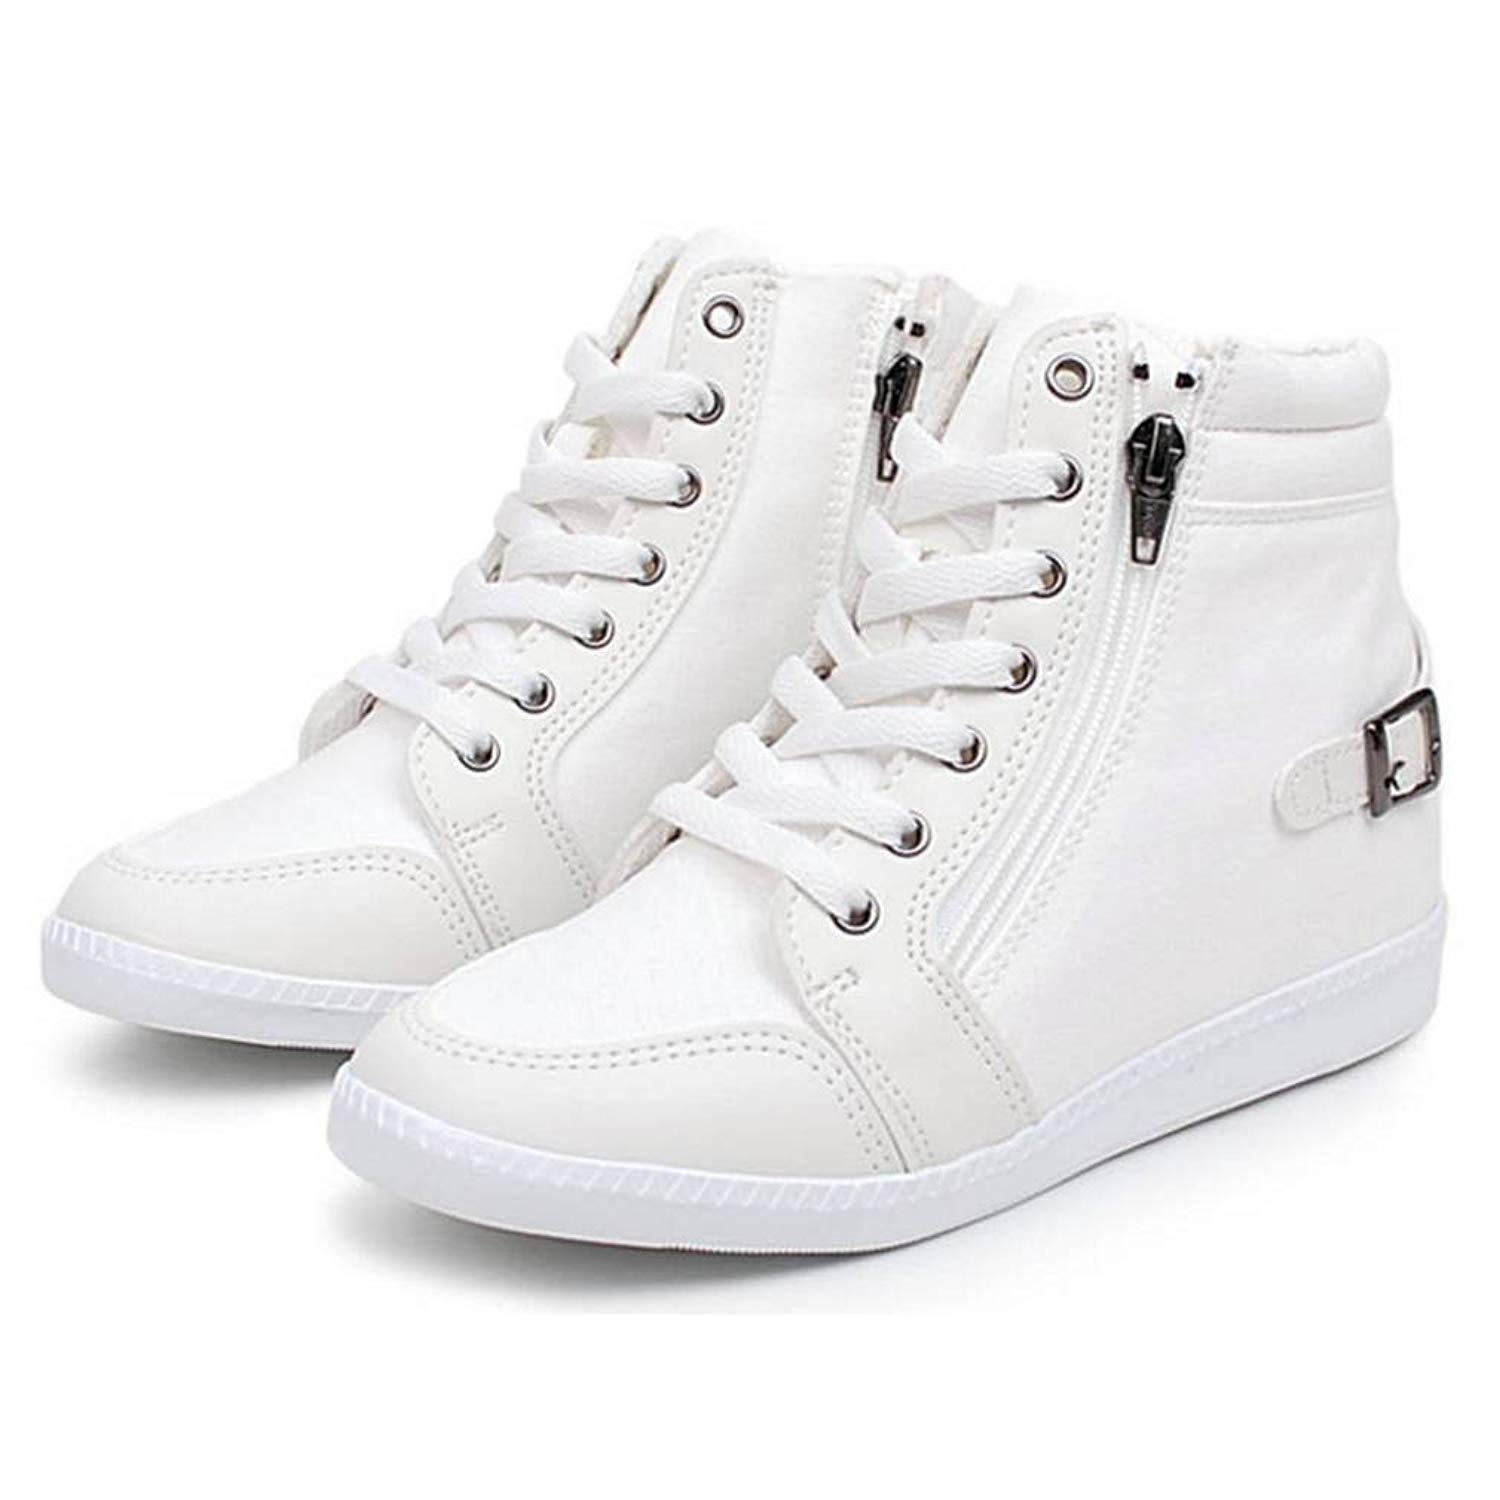 97857649b2f EpicStep Women s Casual Canvas High Tops Zip Lace Up Hidden Wedges Fashion  Sneakers Shoes